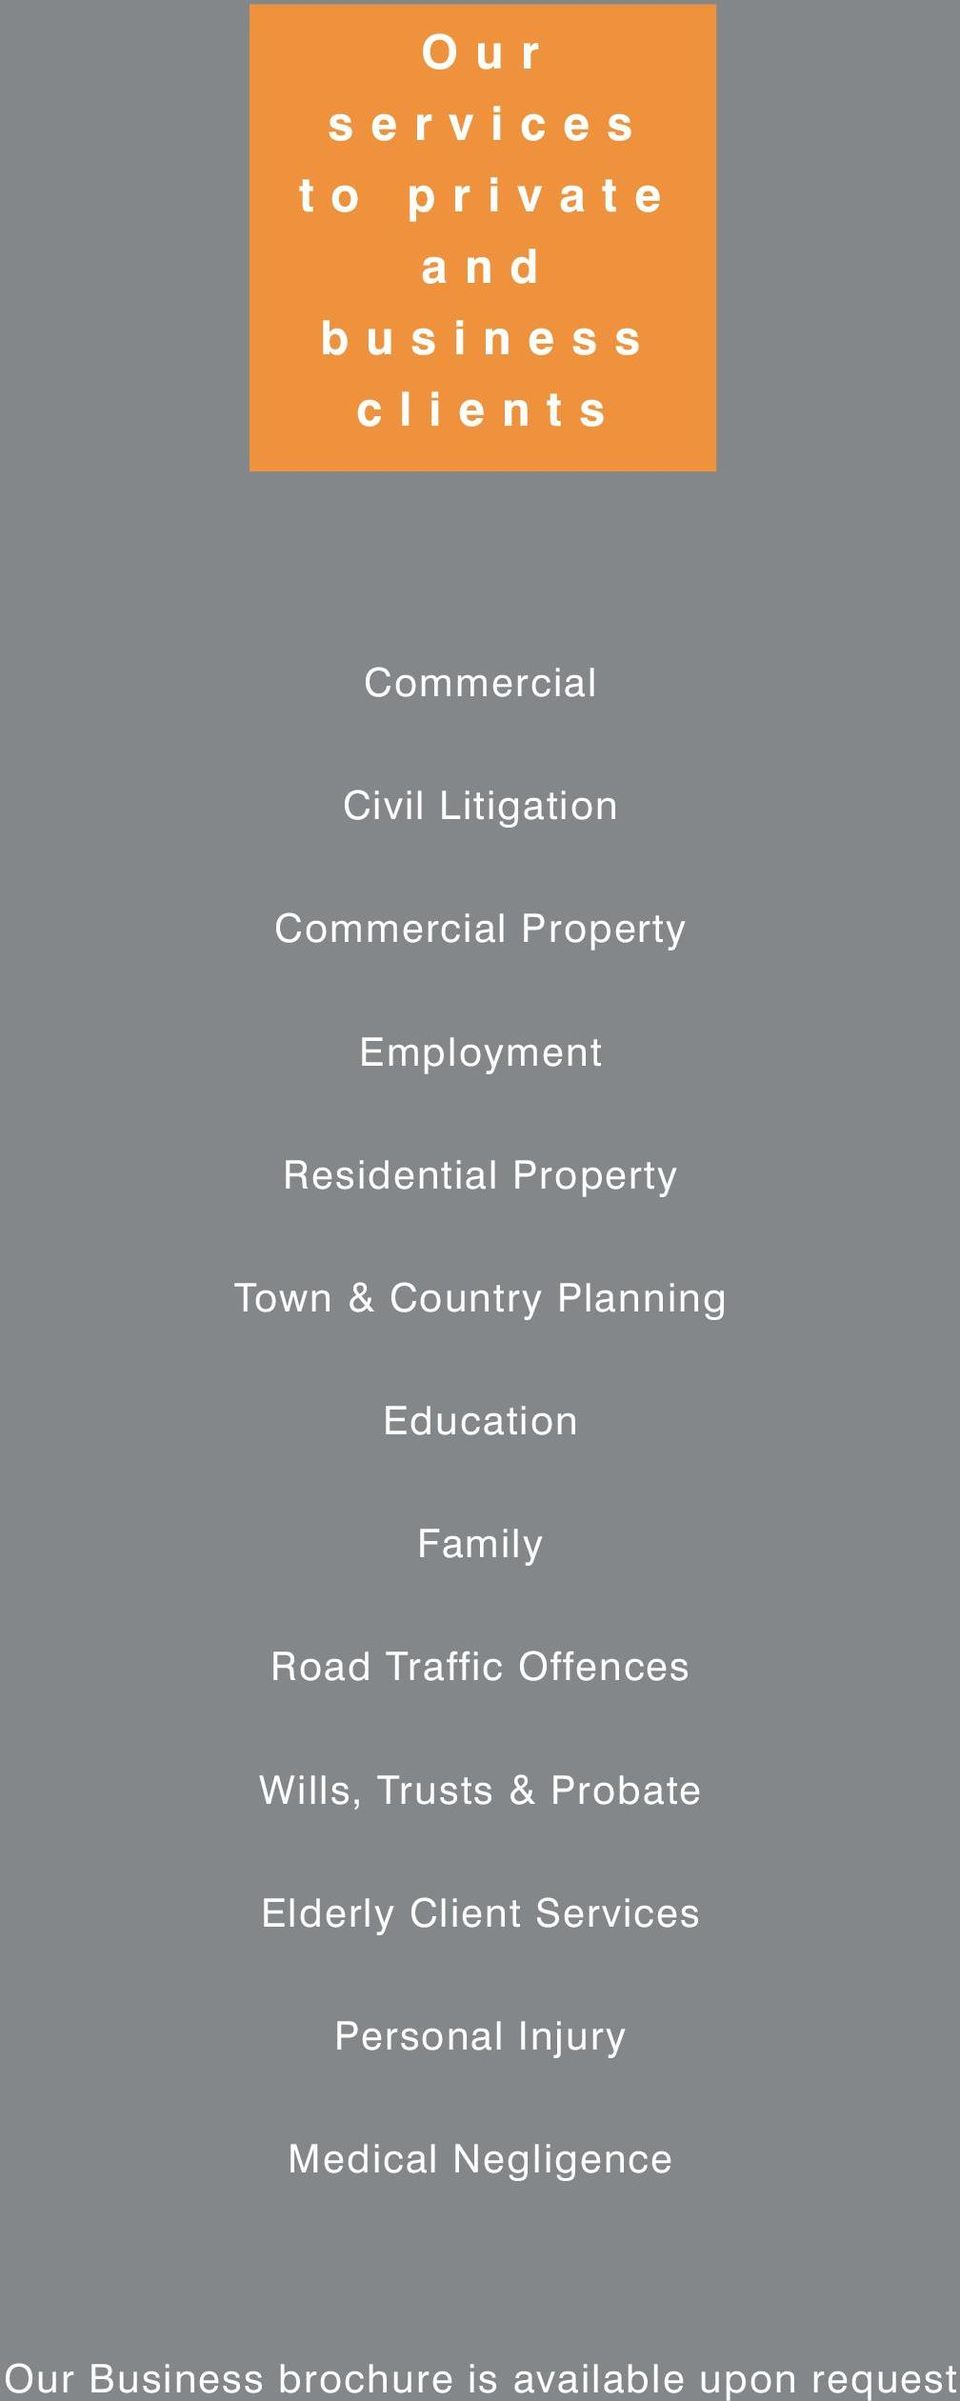 Planning Education Family Road Traffic Offences Wills, Trusts & Probate Elderly Client